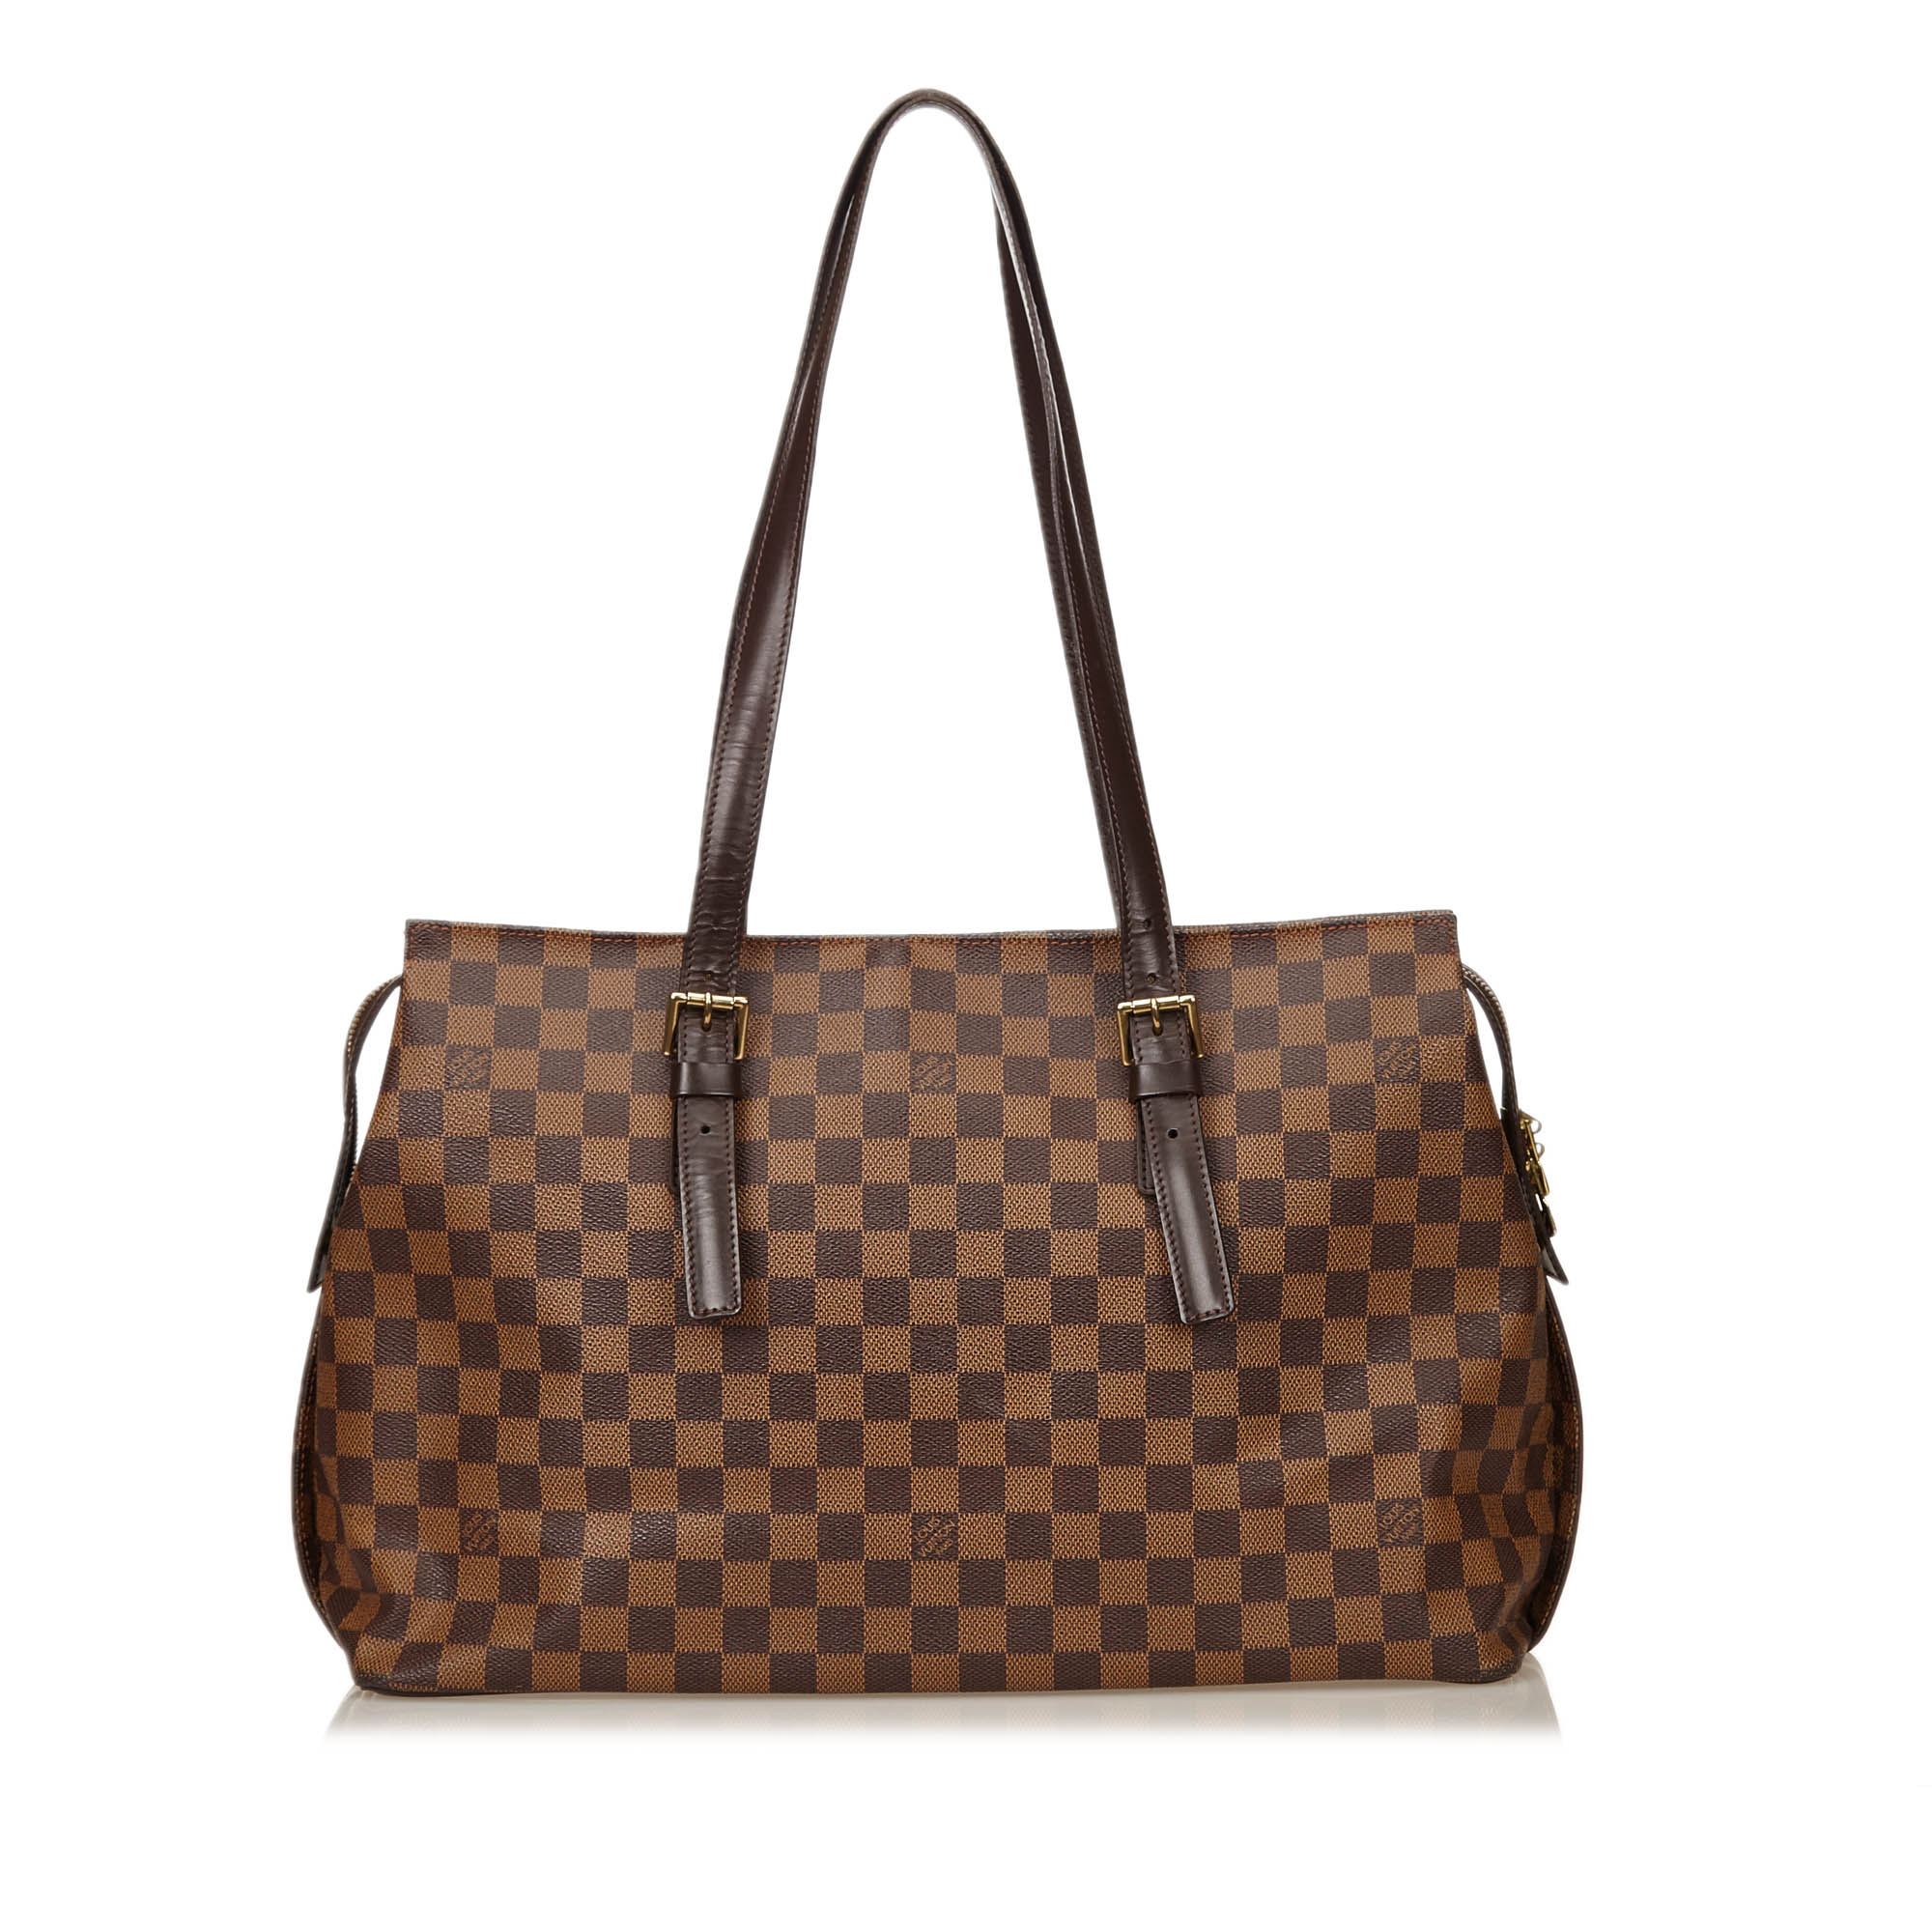 Louis Vuitton Damier Ebene Canvas Chelsea Tote